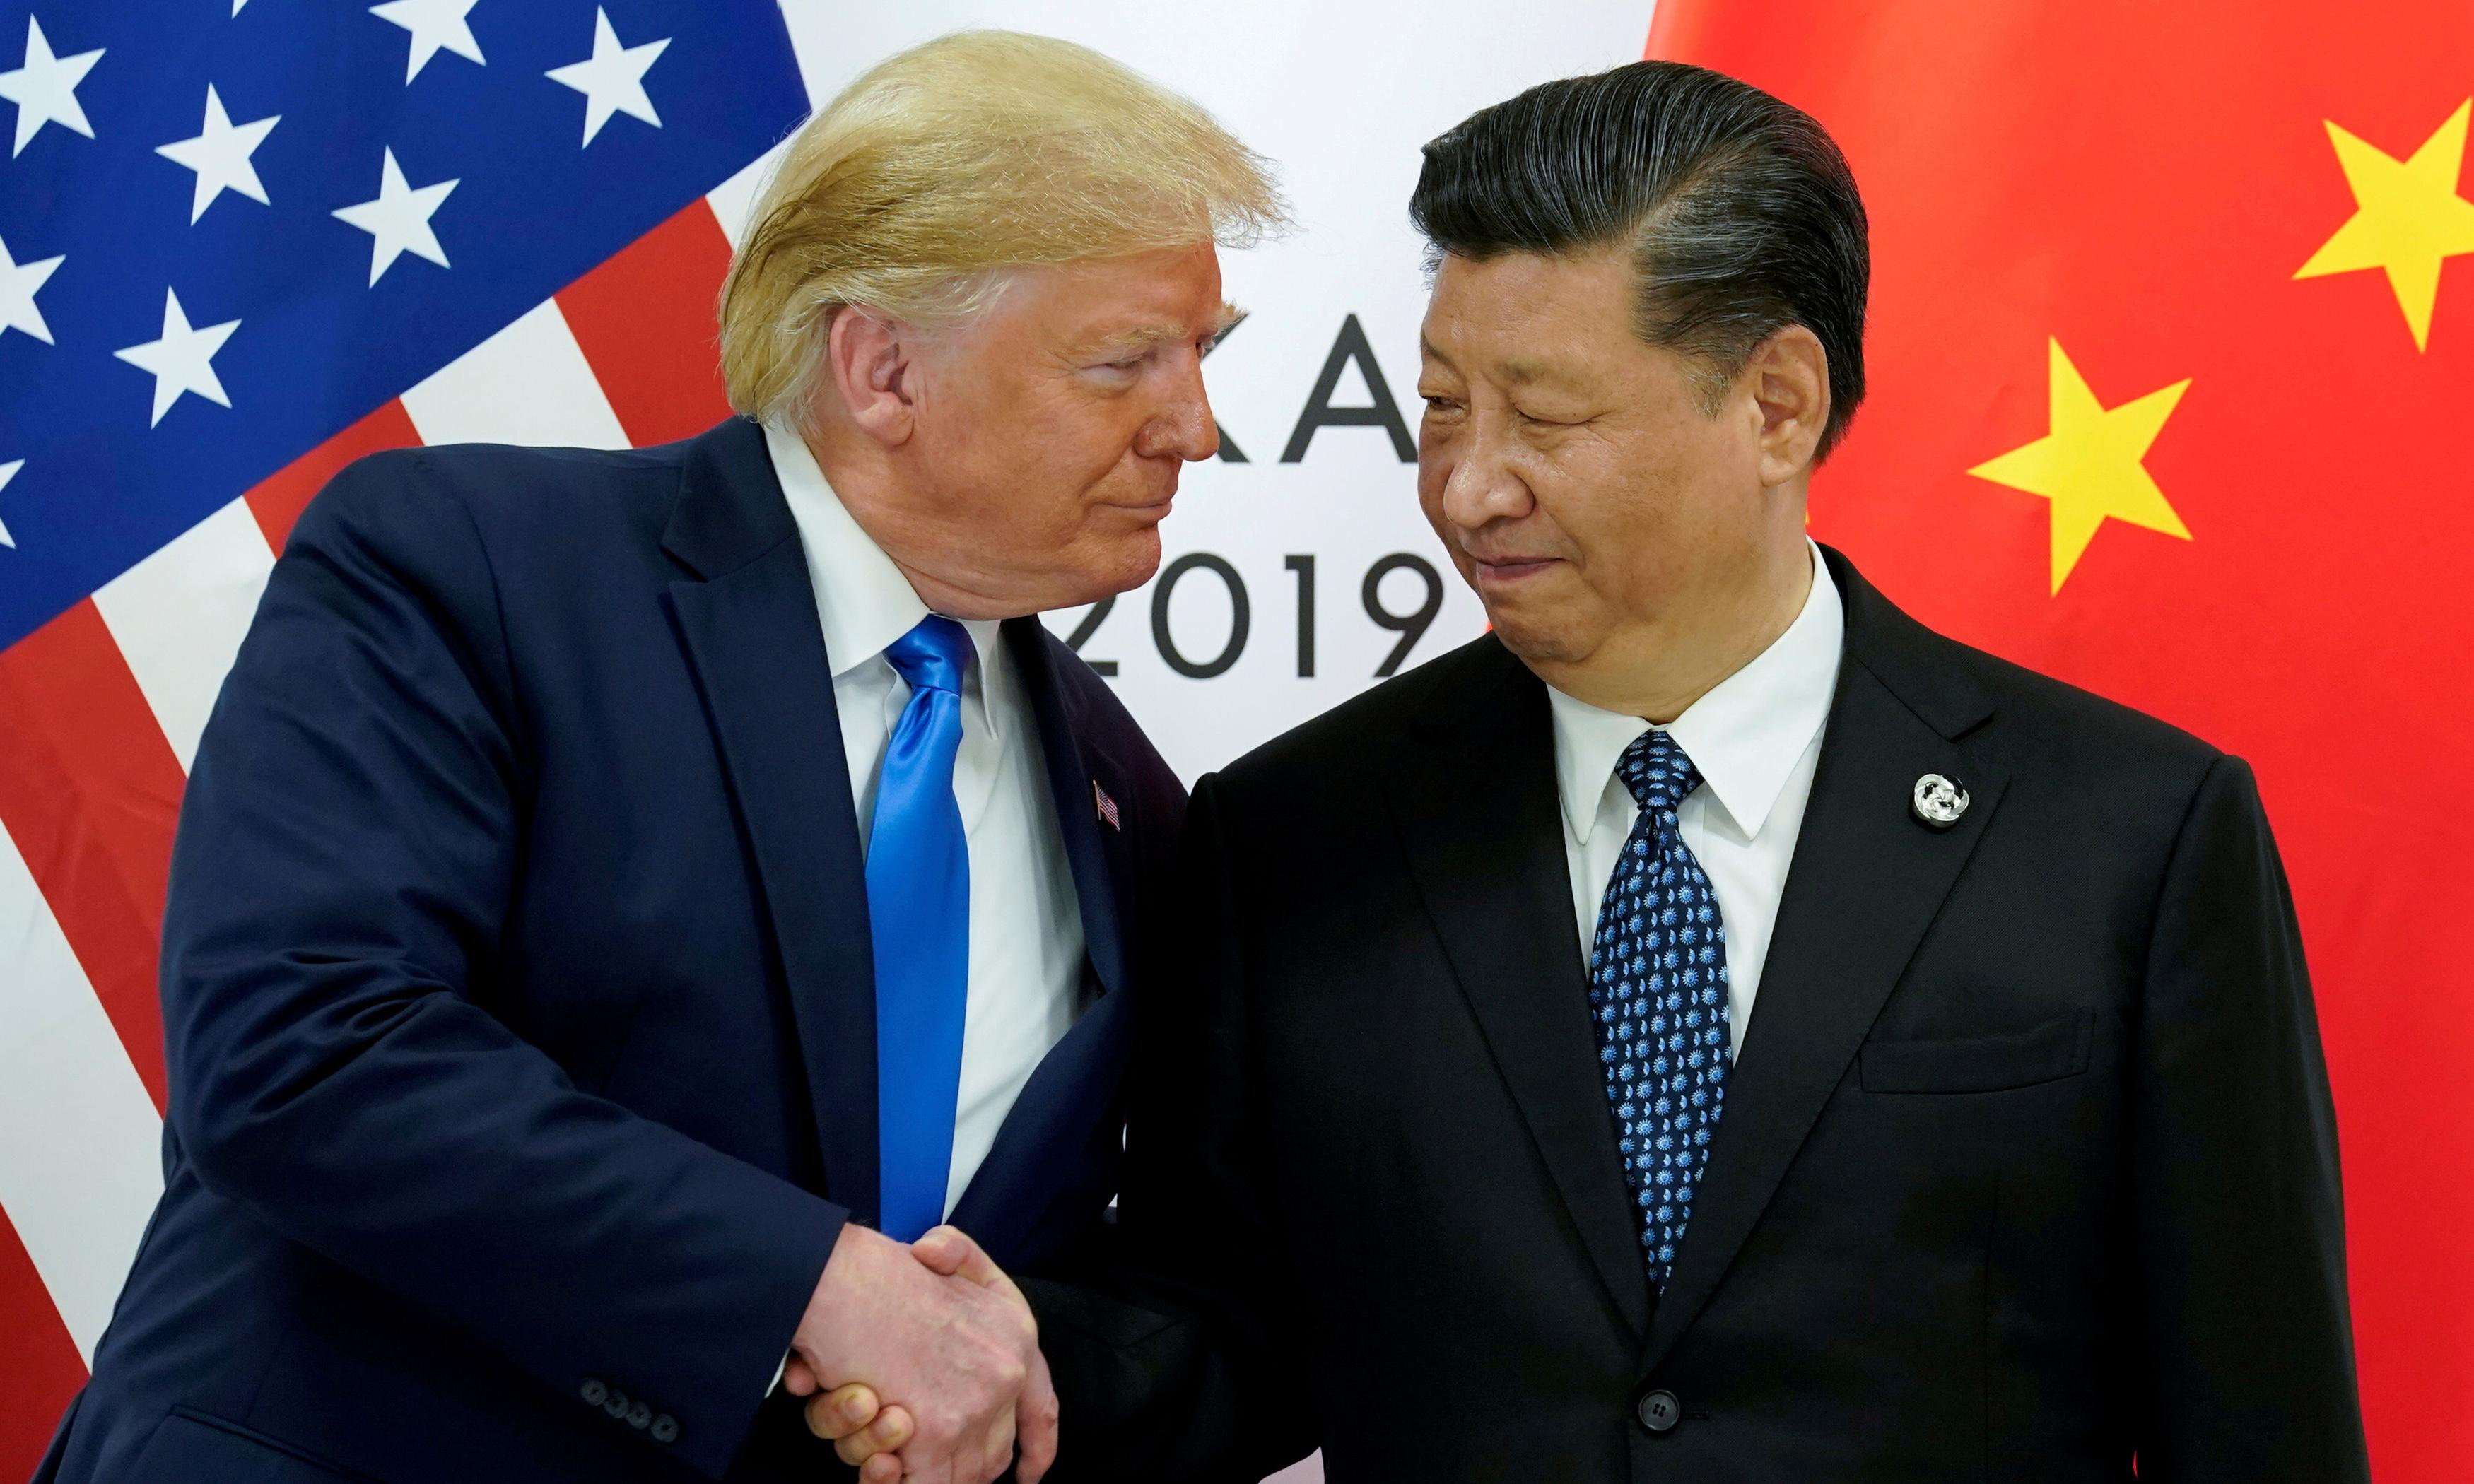 Here are the reasons for Trump's economic war with China